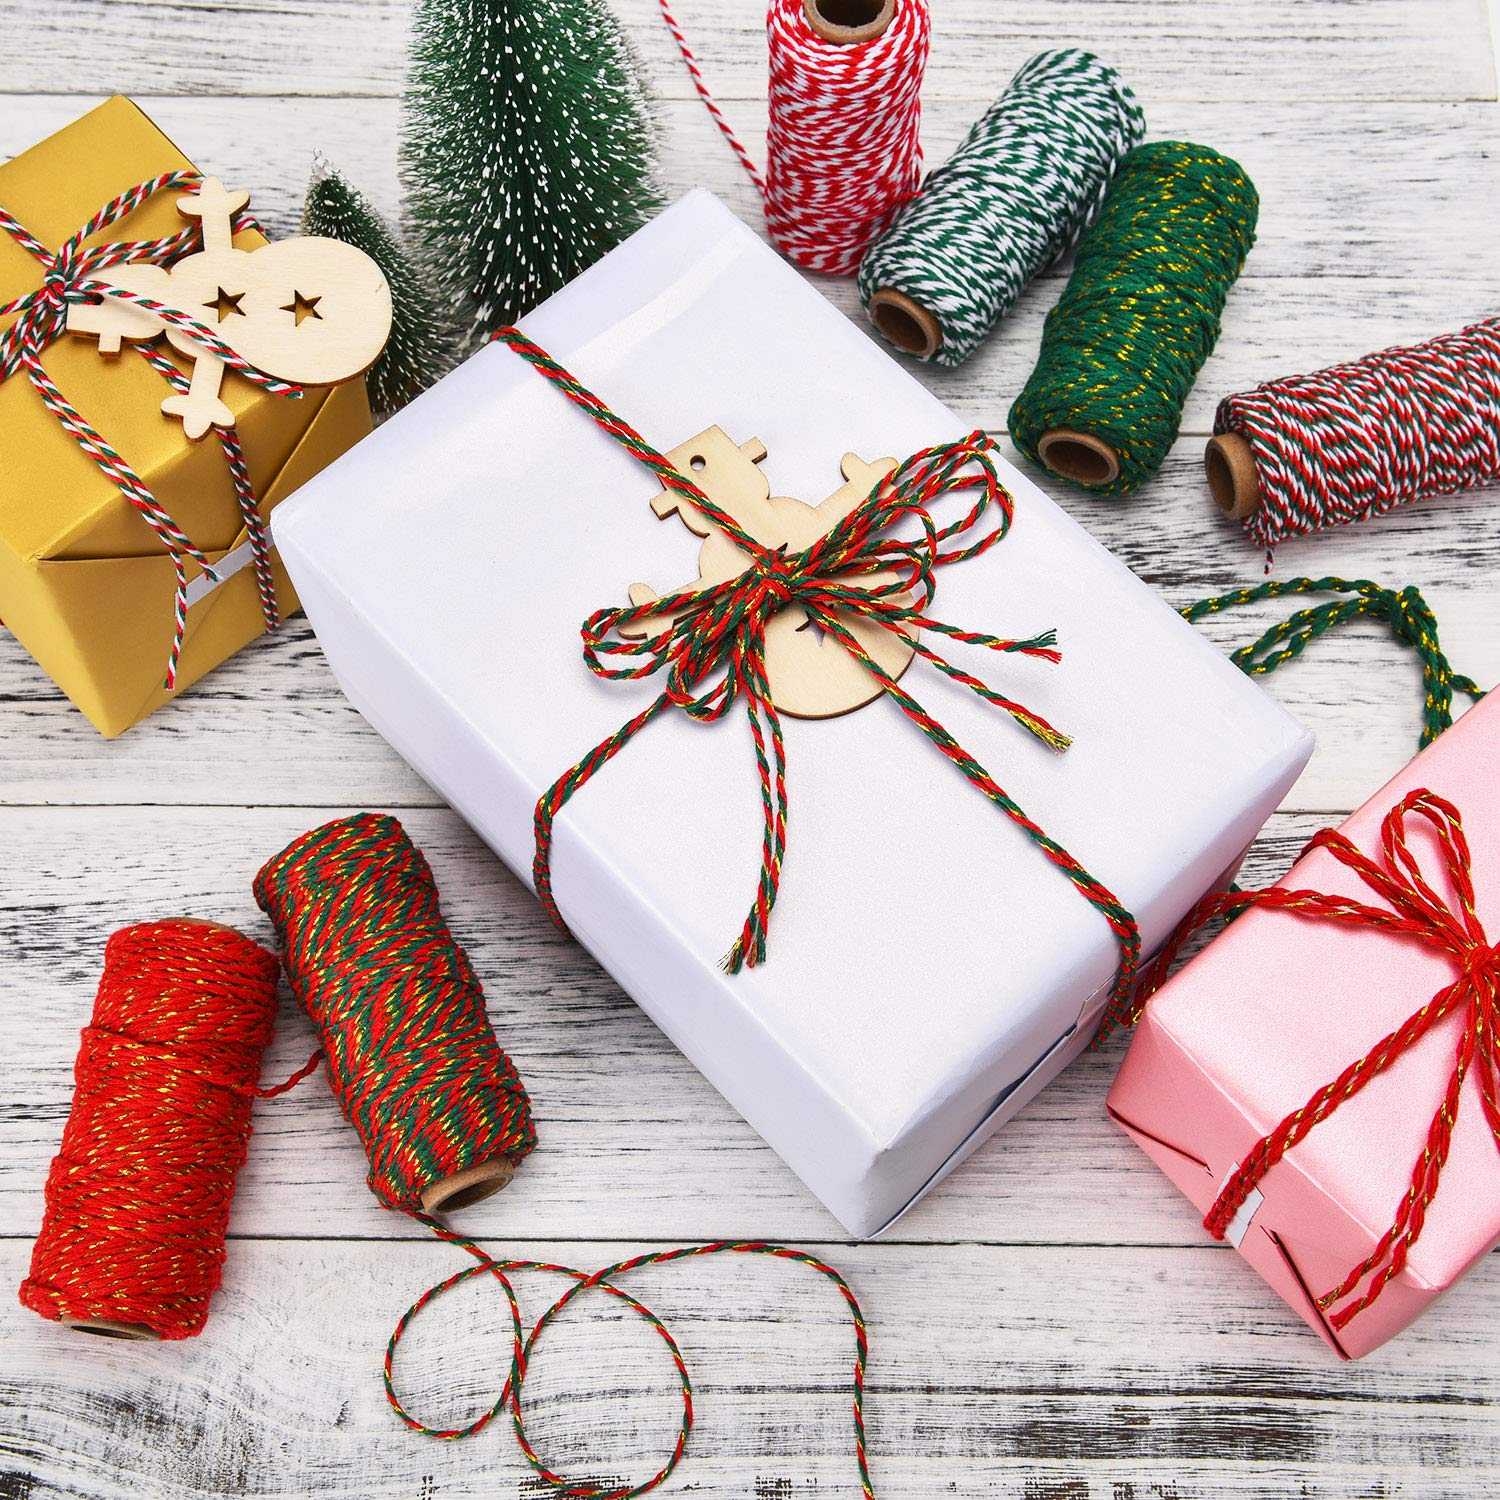 6 Rolls Christmas Twine Gift Wrapping Cord Bakers Twine Cotton Rope for Packing Arts Crafts Garden Decoration Supplies 6 Colors